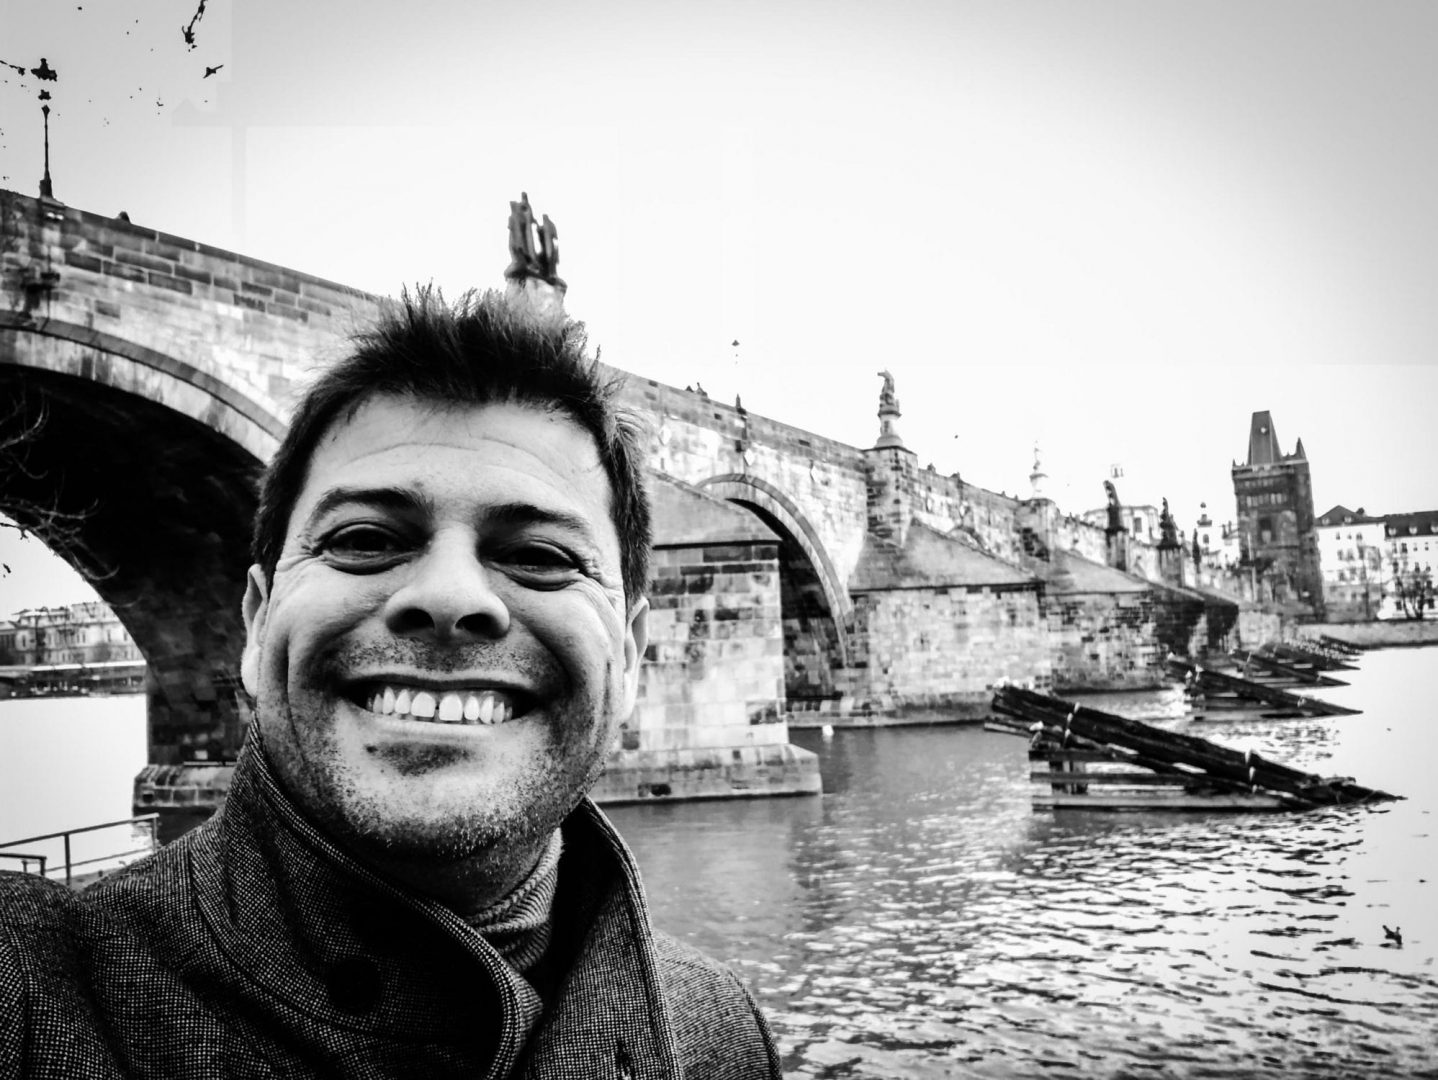 My trip selfie in front of the Charles Bridge, one of the most iconic sites of Prague.